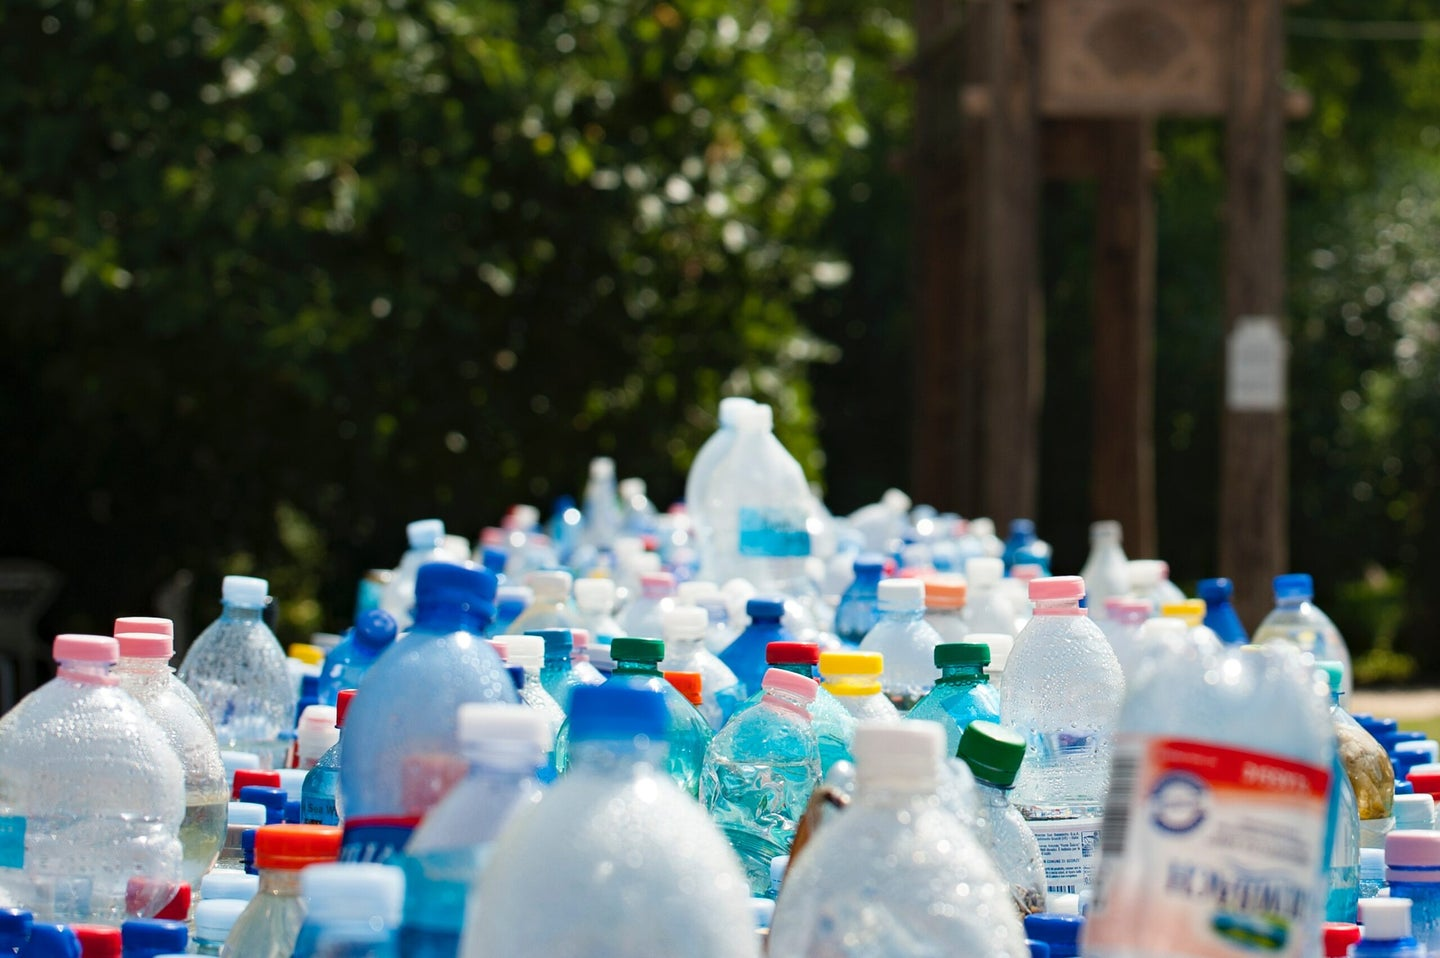 Rows of recyclable plastic bottles